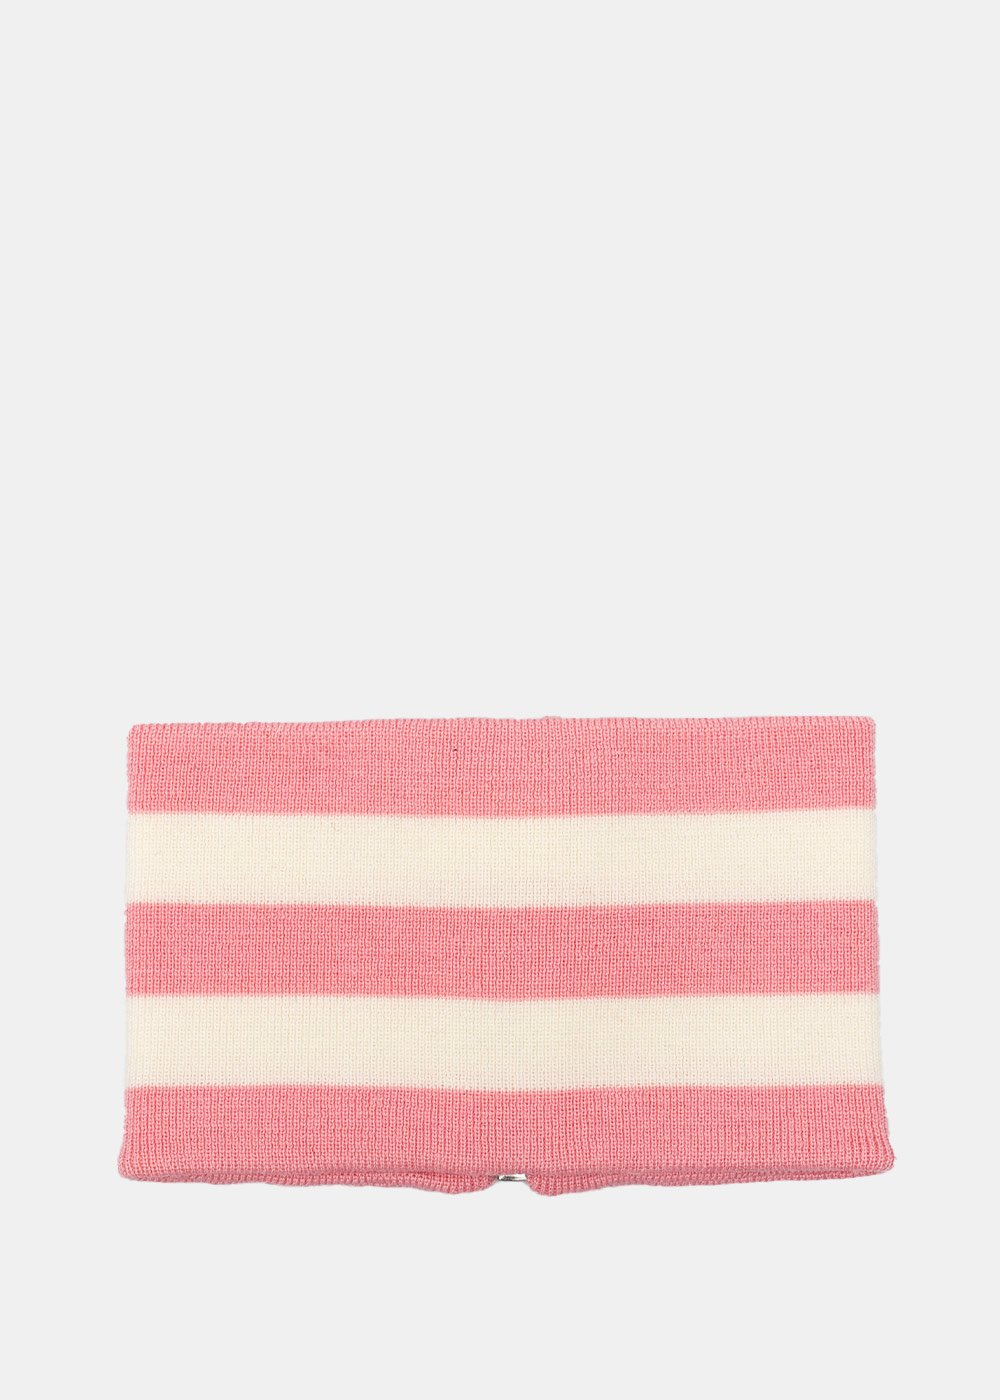 Pink & Beige Striped Neck Band